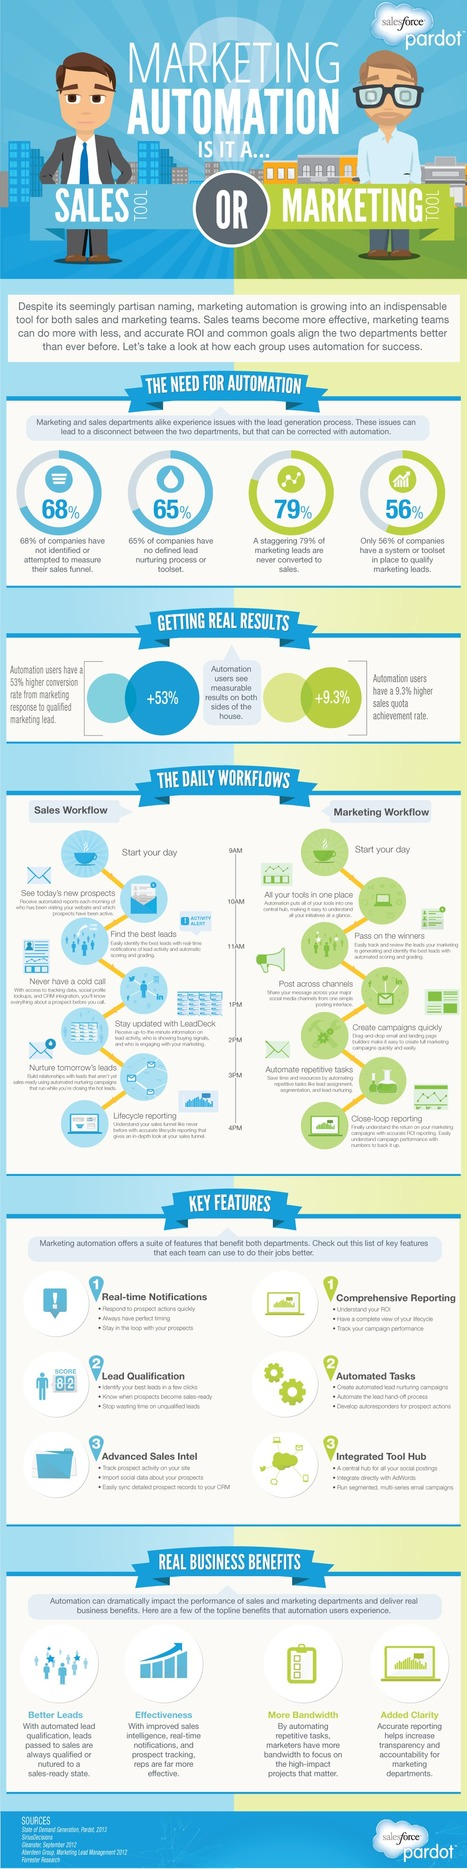 Marketing Automation: Sales or Marketing Tool? #infographic - Pardot | #TheMarketingAutomationAlert | email marketing | Scoop.it